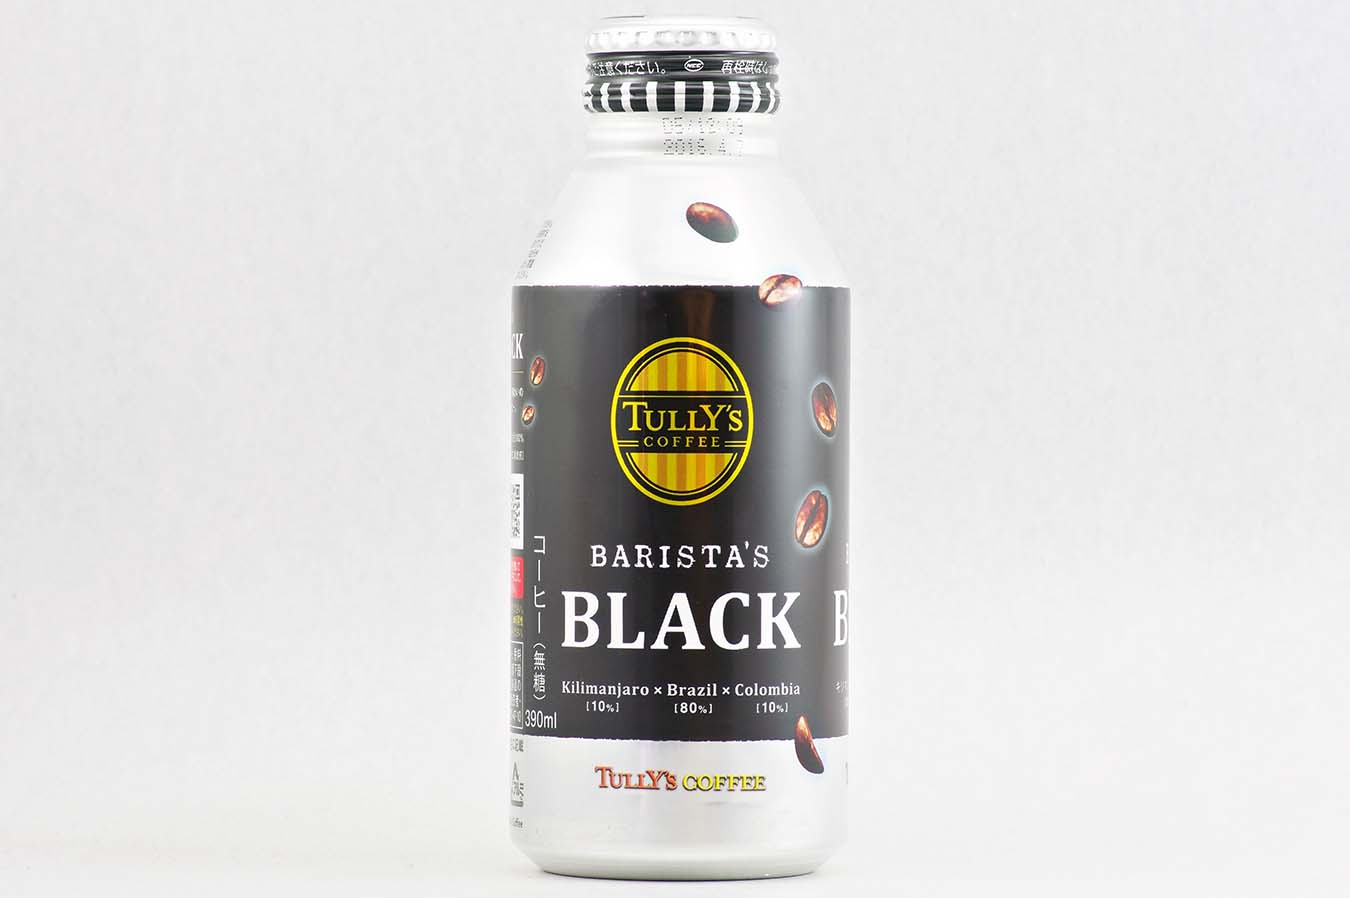 TULLY'S COFFEE BARISTA'S BLACK 390mlボトル缶 2015年5月